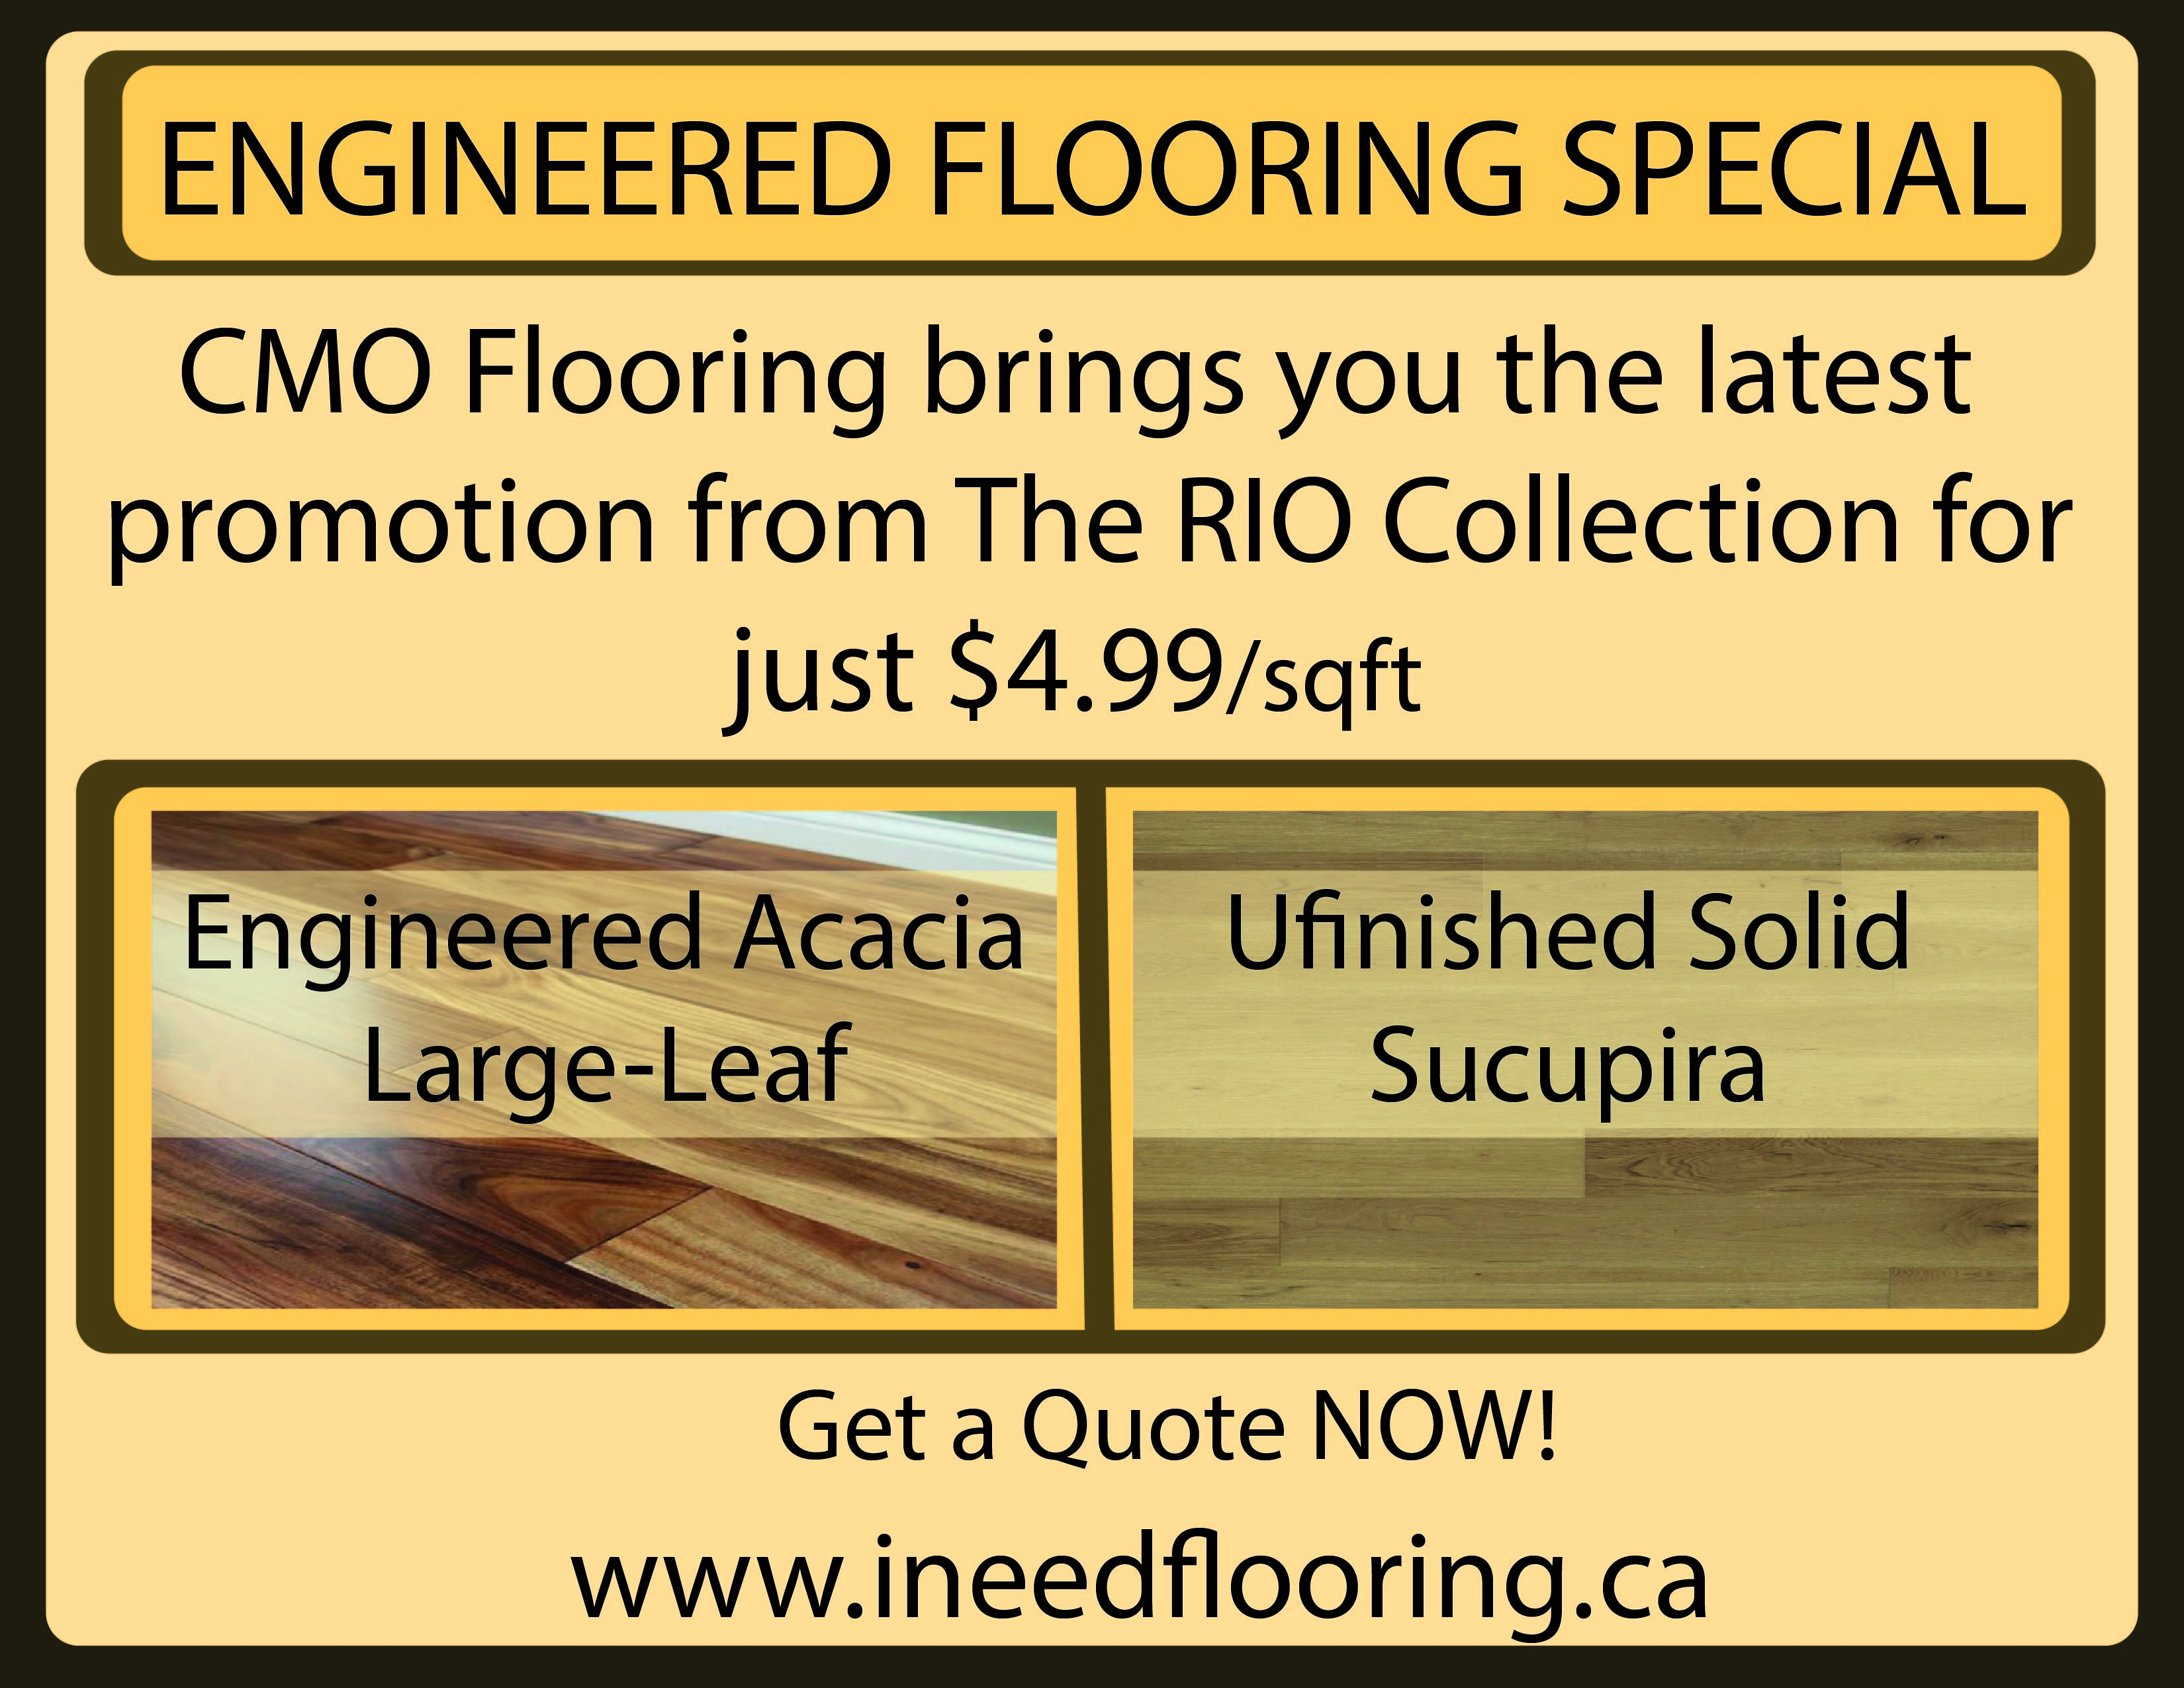 the-rio-collection-cmo-flooring-floors-promotion-engineered-flooring-special-vancouver-cmo-floors